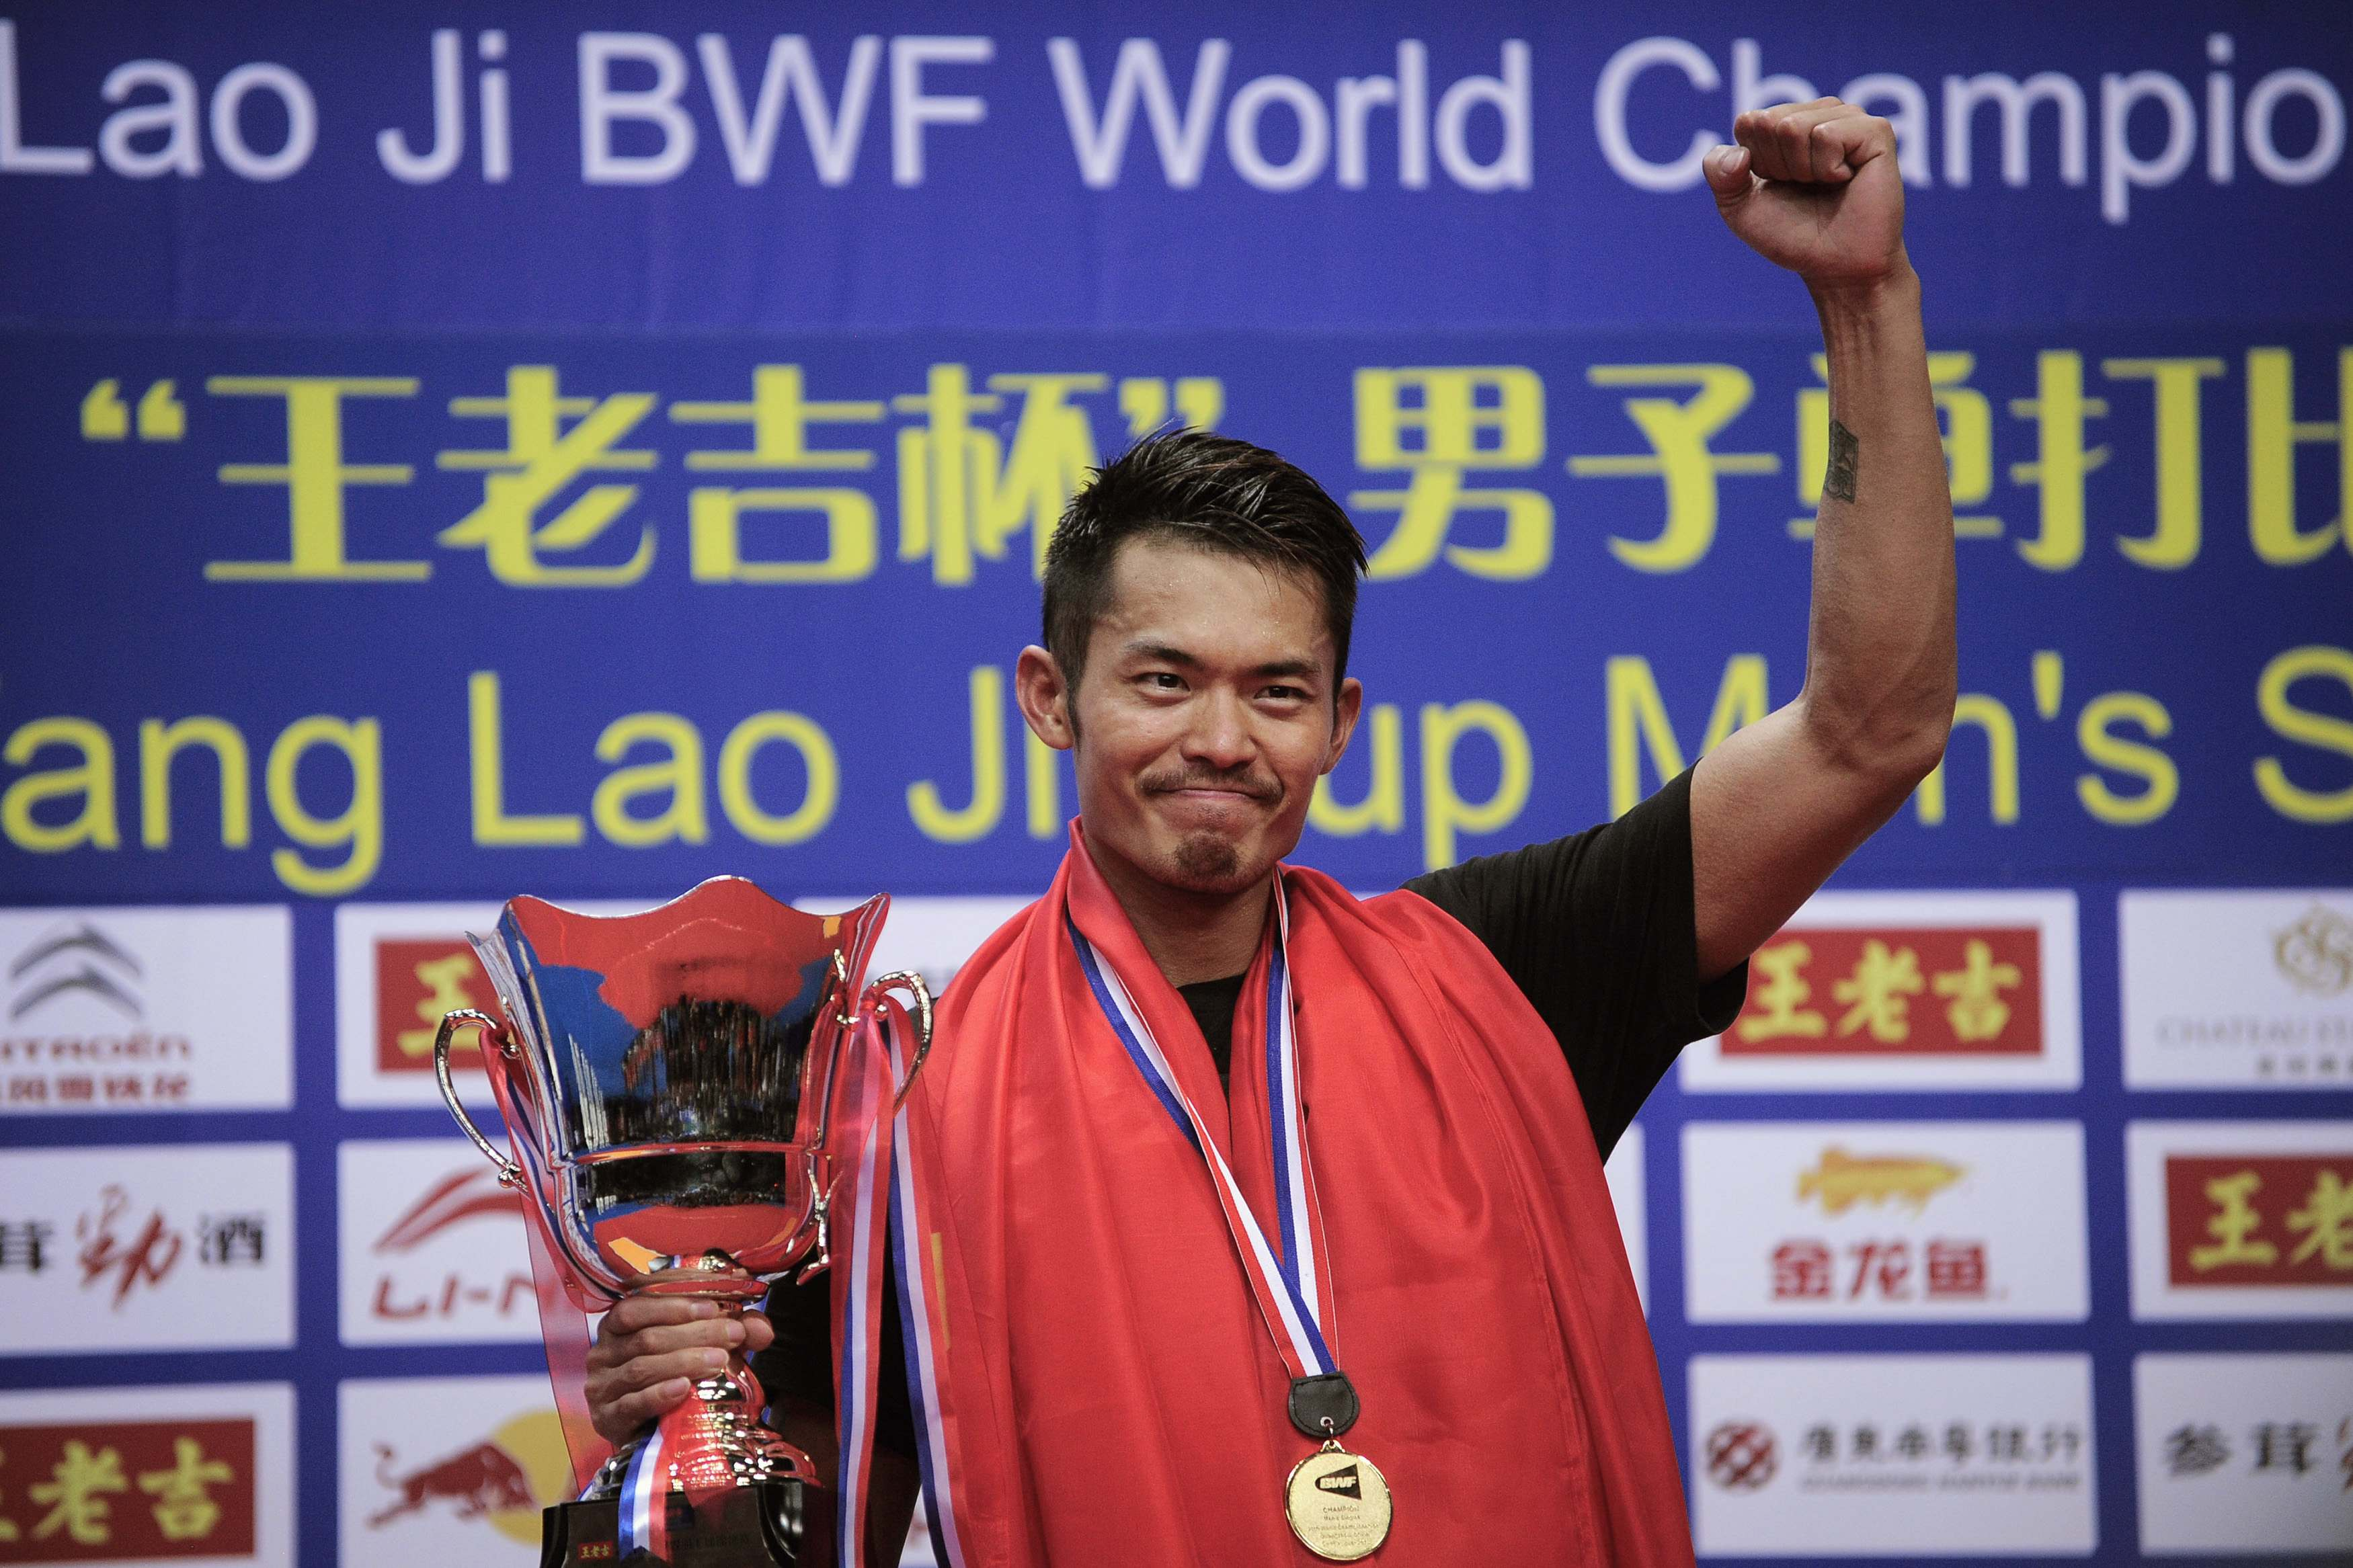 China's Lin Dan gestures with his trophy on the podium after defeating Malaysia's Lee Chong Wei during their men's singles final match at the 2013 Badminton World Championships in Guangzhou, Guangdong province August 11, 2013. REUTERS/Stringer